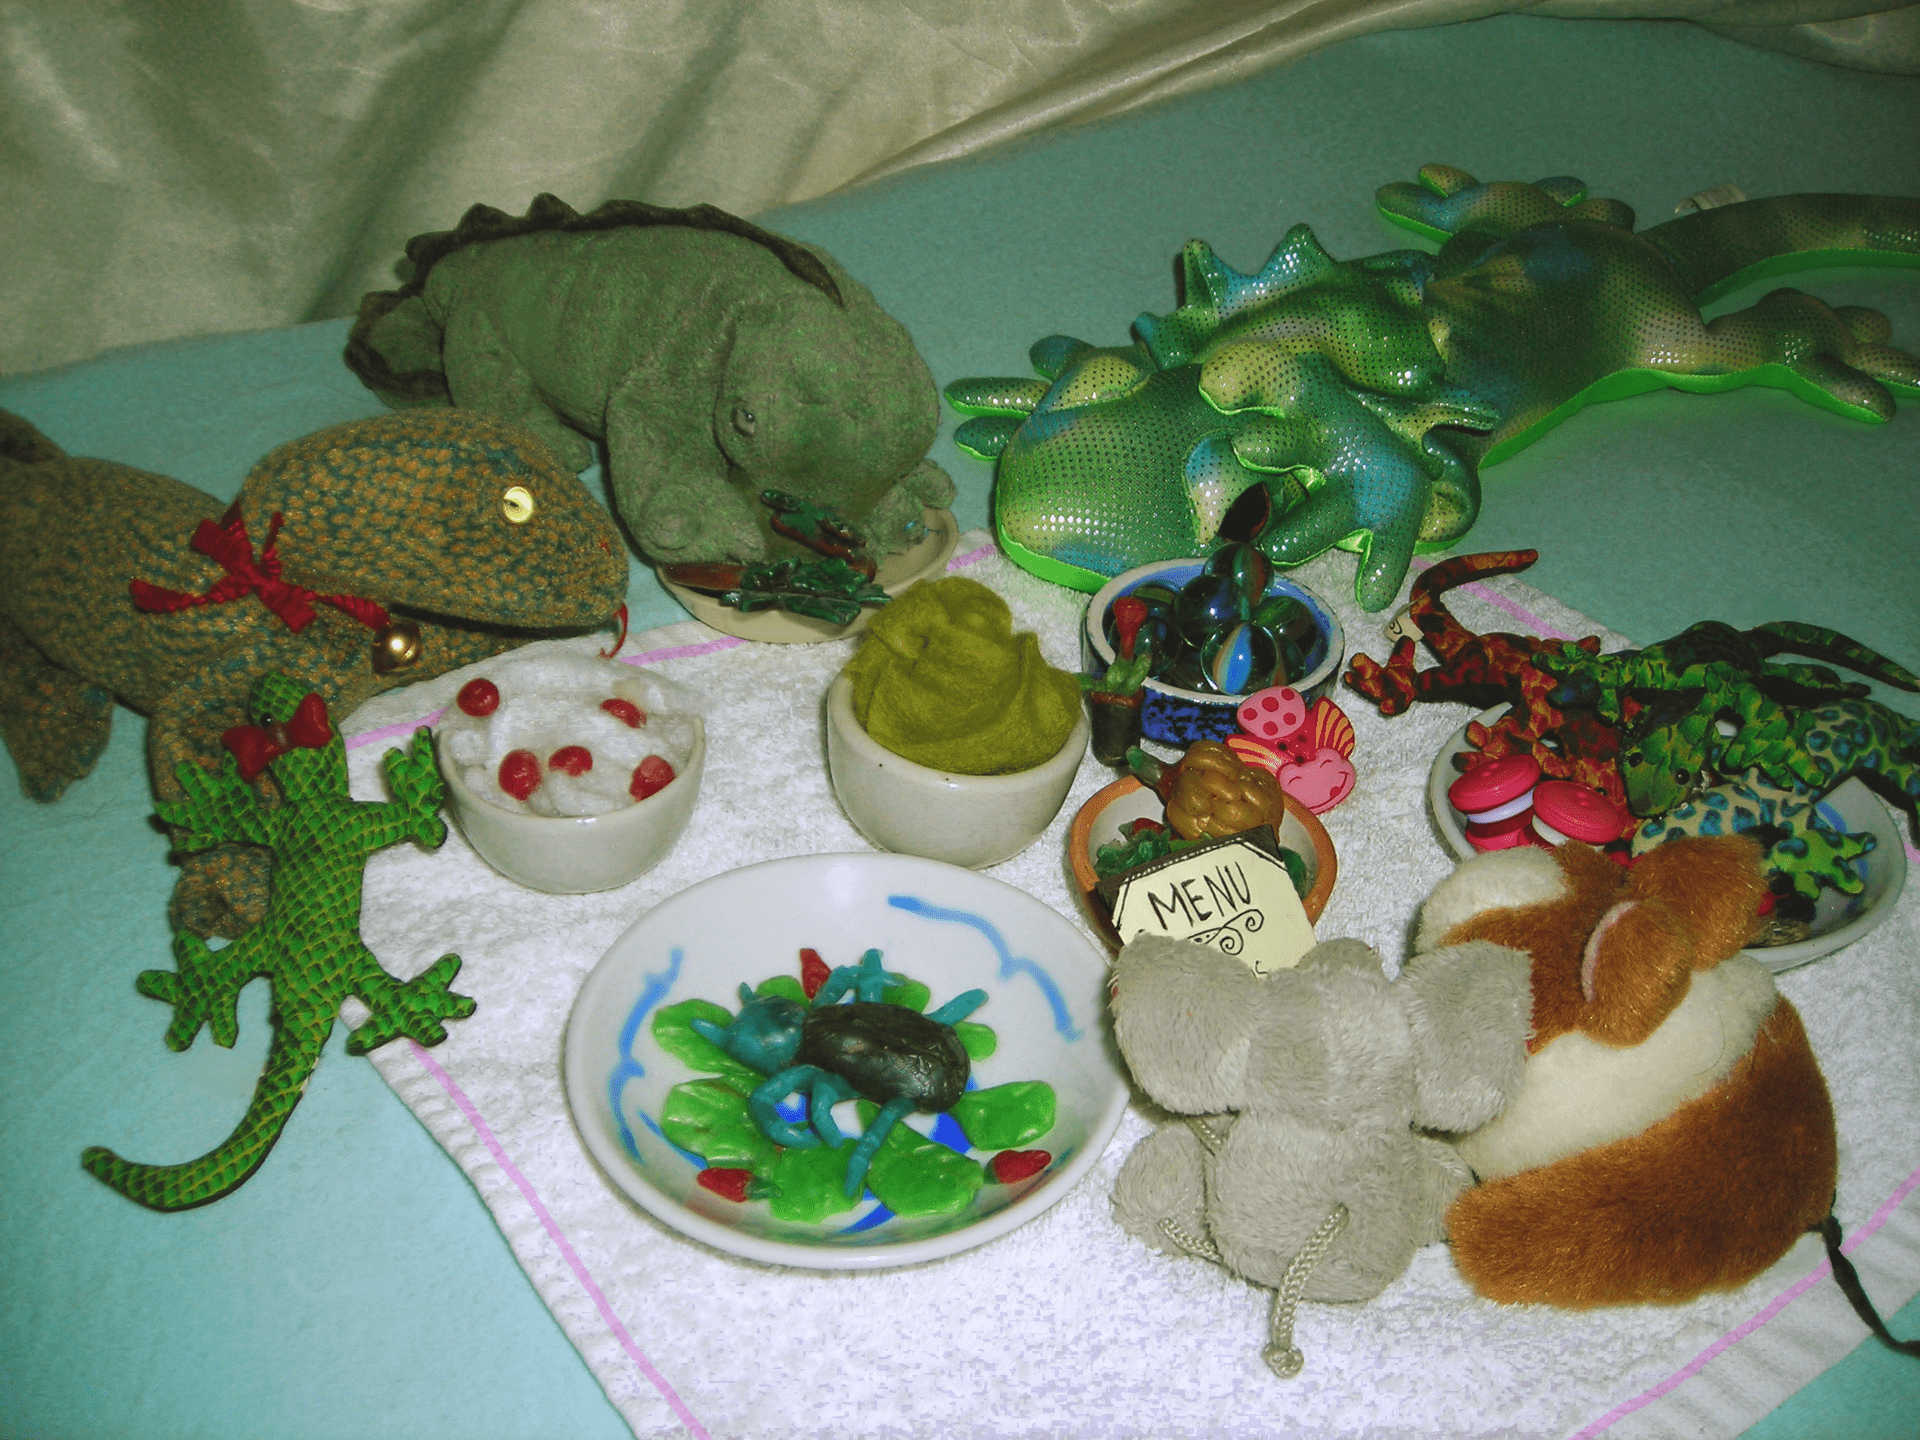 A selection of toy lizards enjoying a picnic.